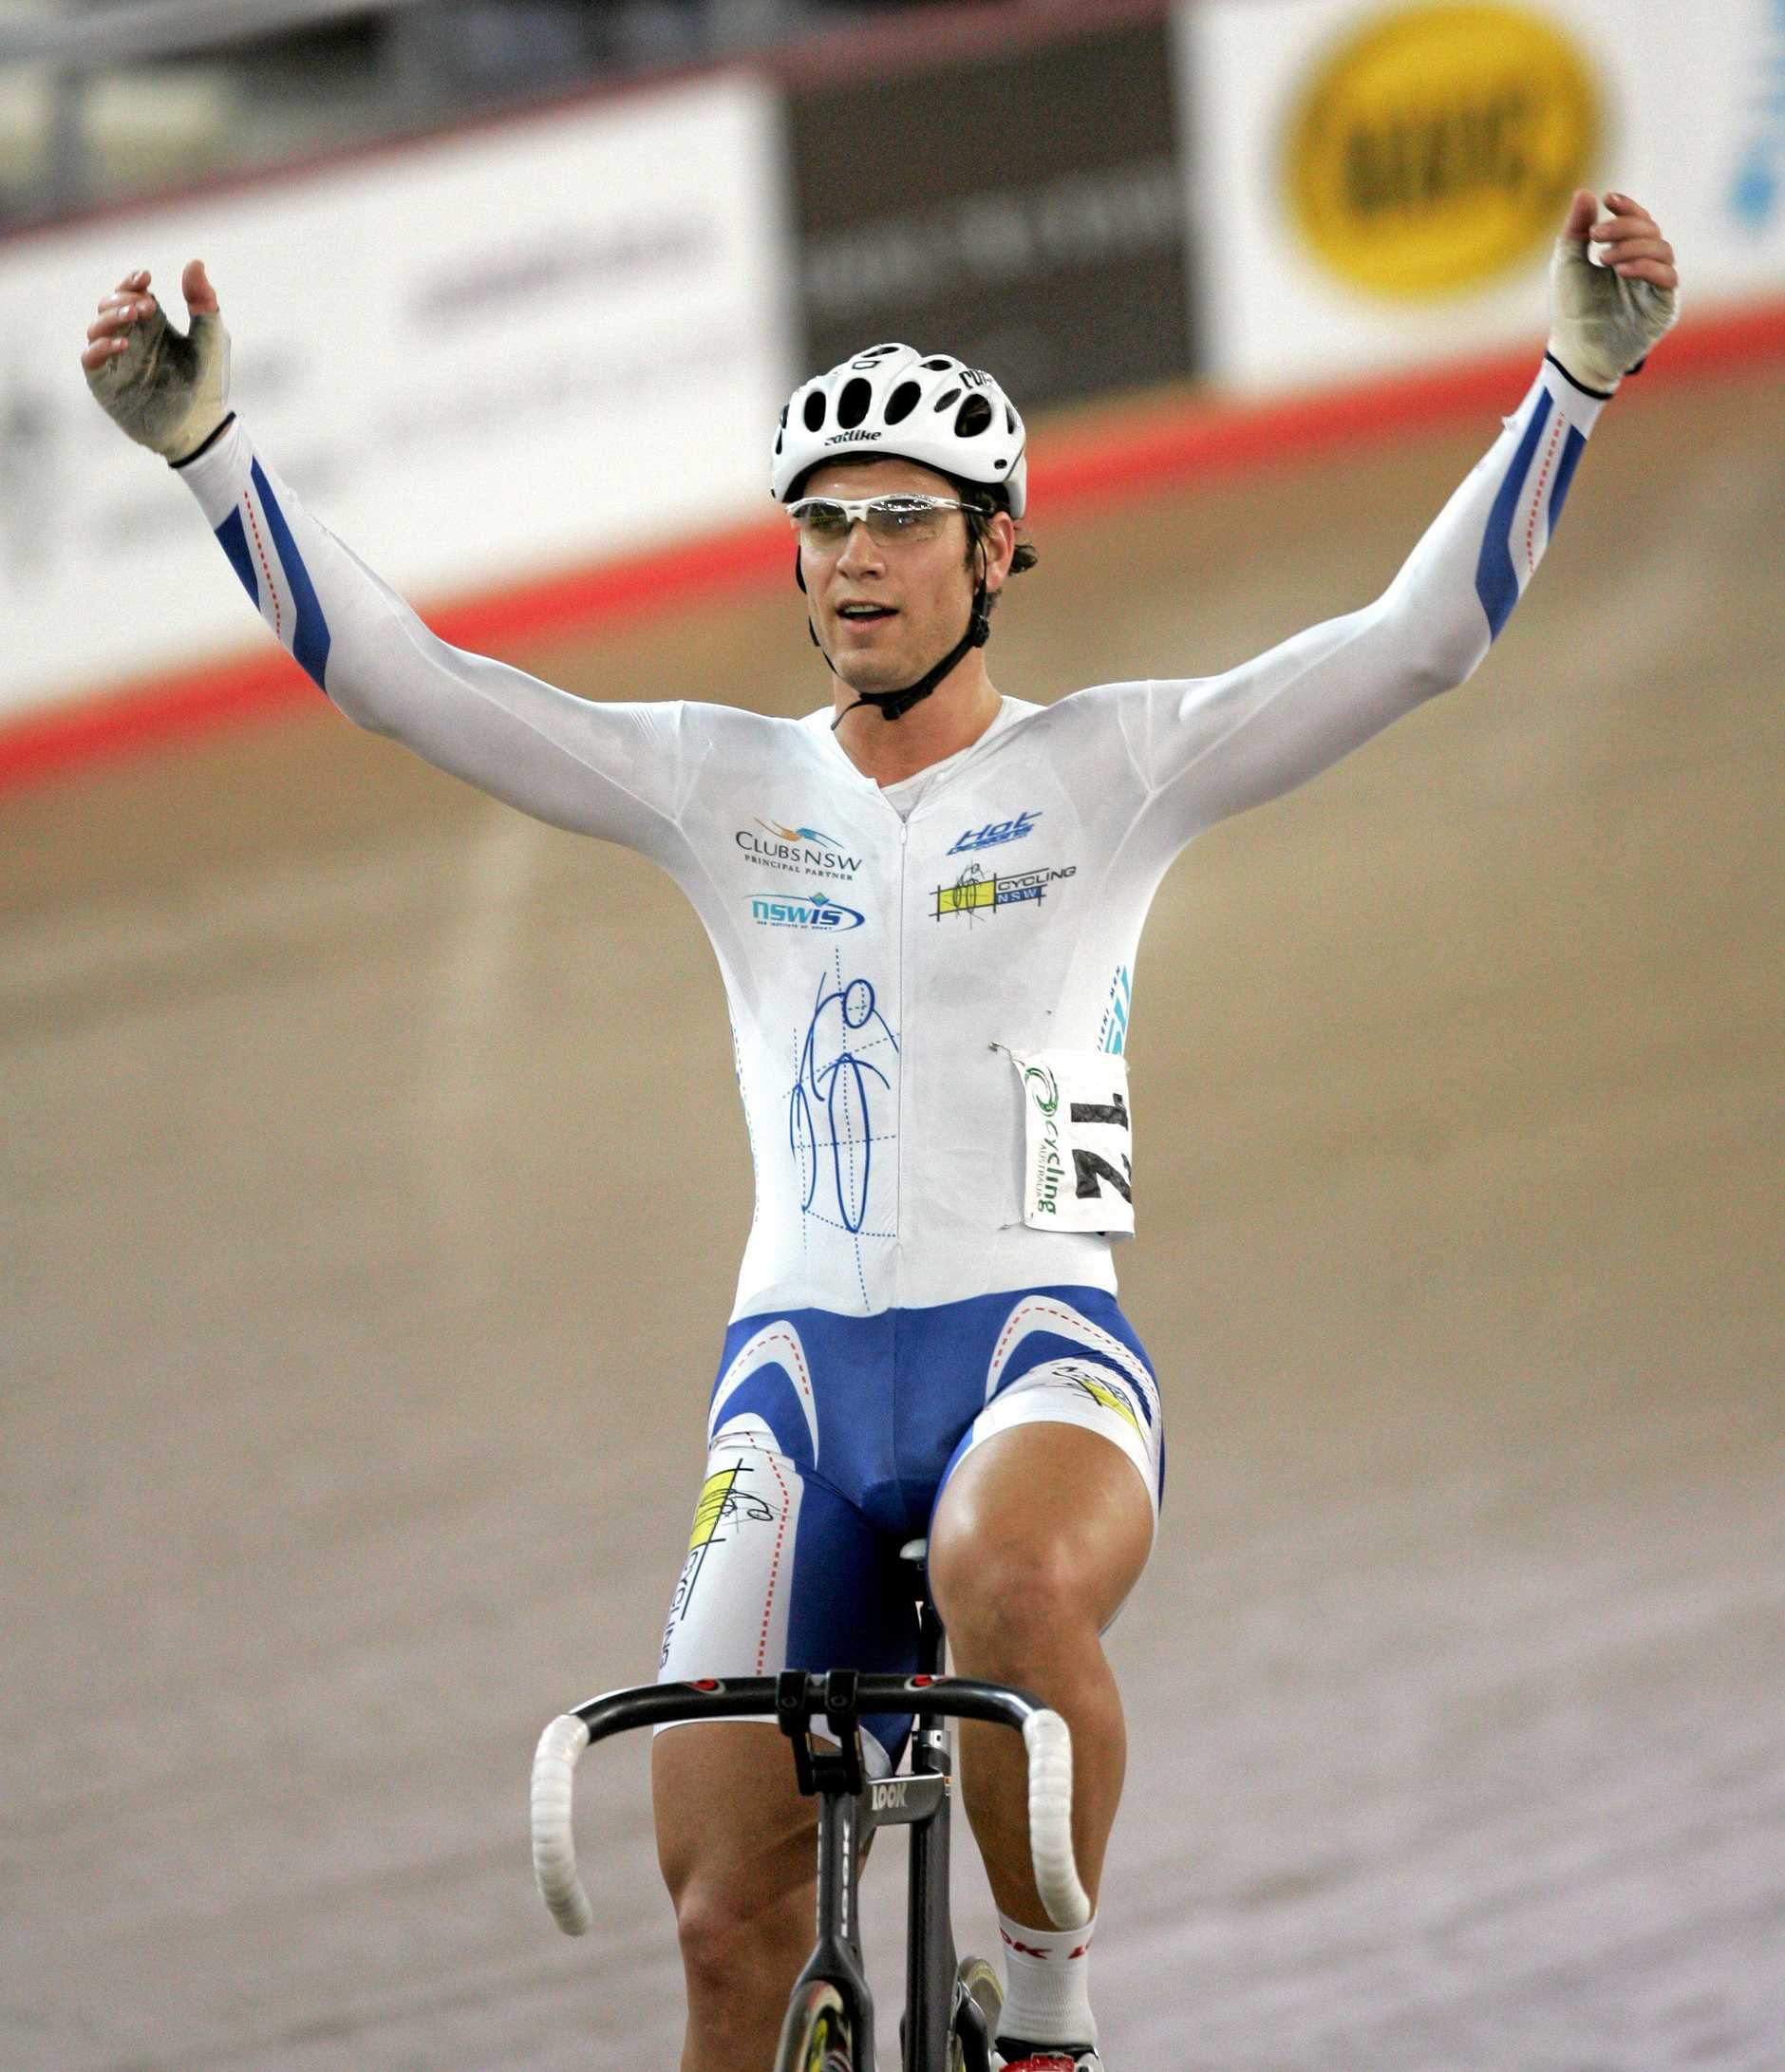 Cycling - 2007 Australian Track Cycling Championships @ Dunc Gray Velodrome .Ben Kersten wins the Mens Omnium , after his 3rd place in the 15km Points race Pic;Gregg Porteous